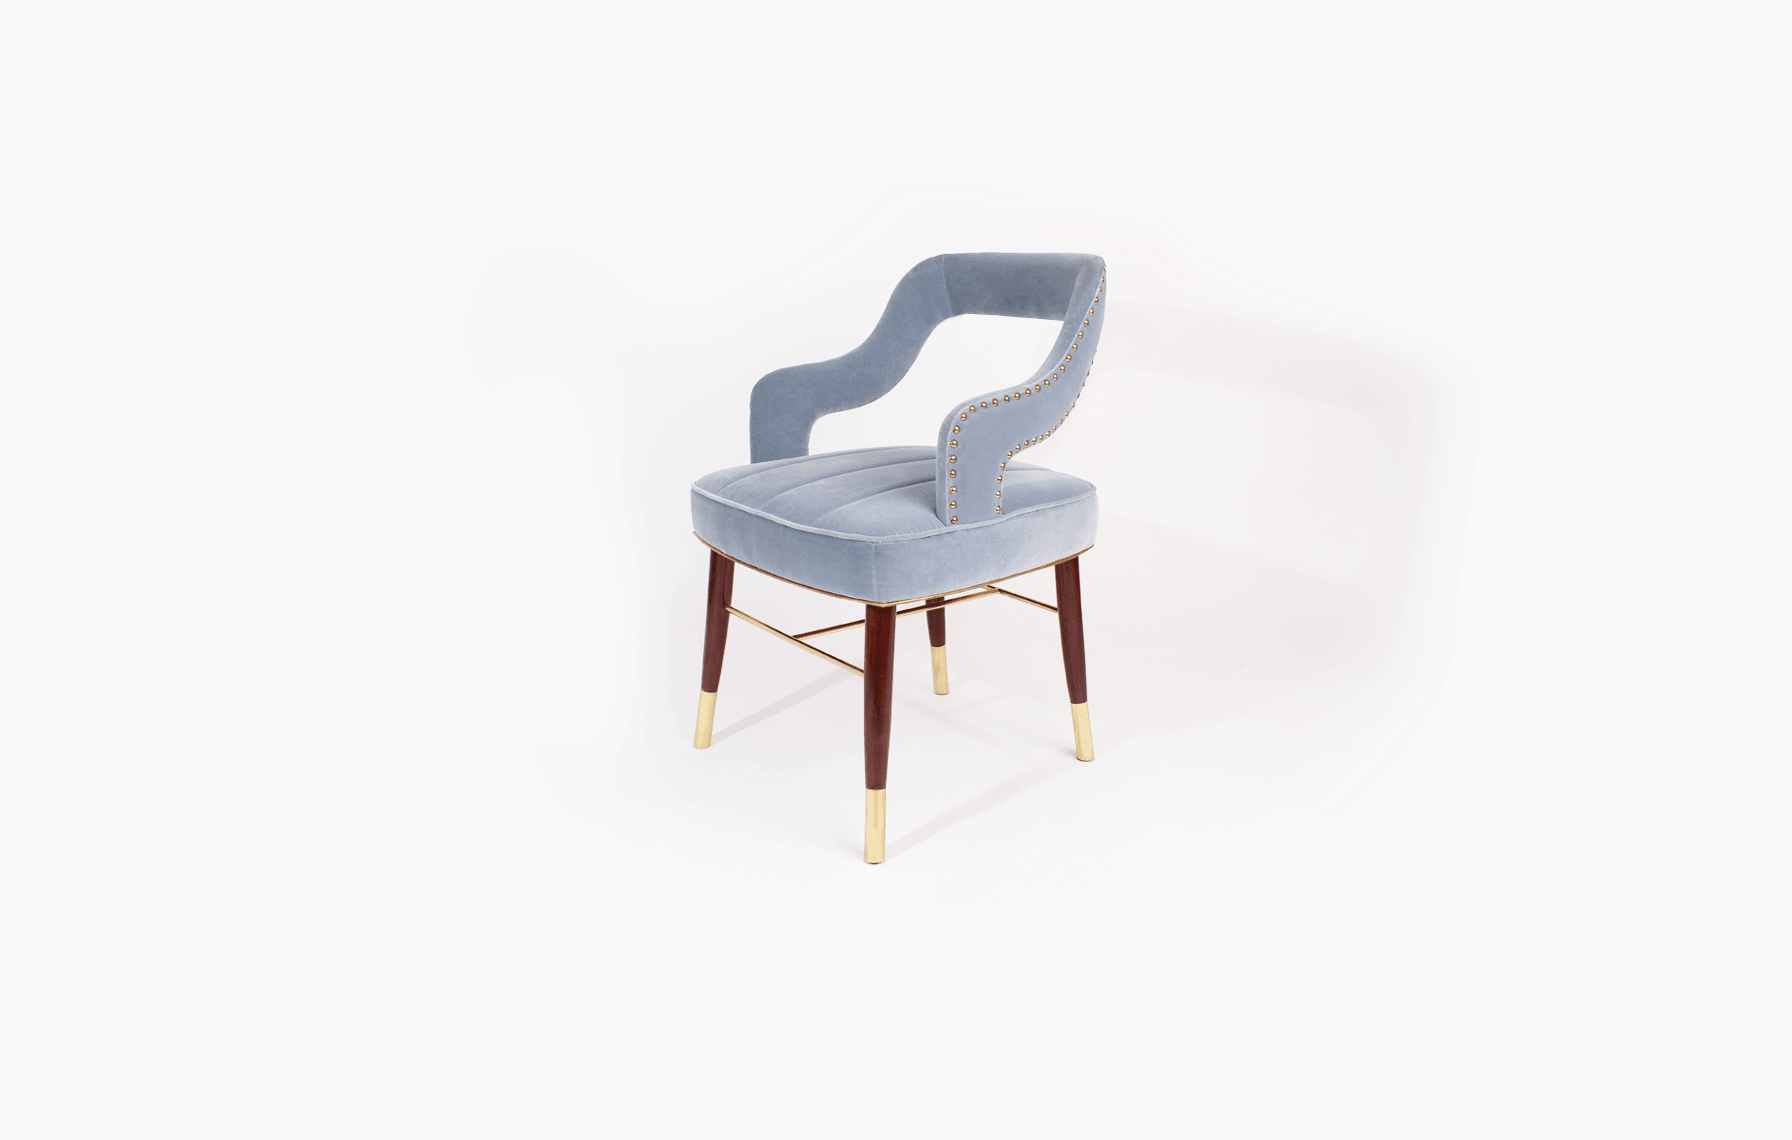 Kelly Mid-Century Modern Dining Chair in blue cotton velvet